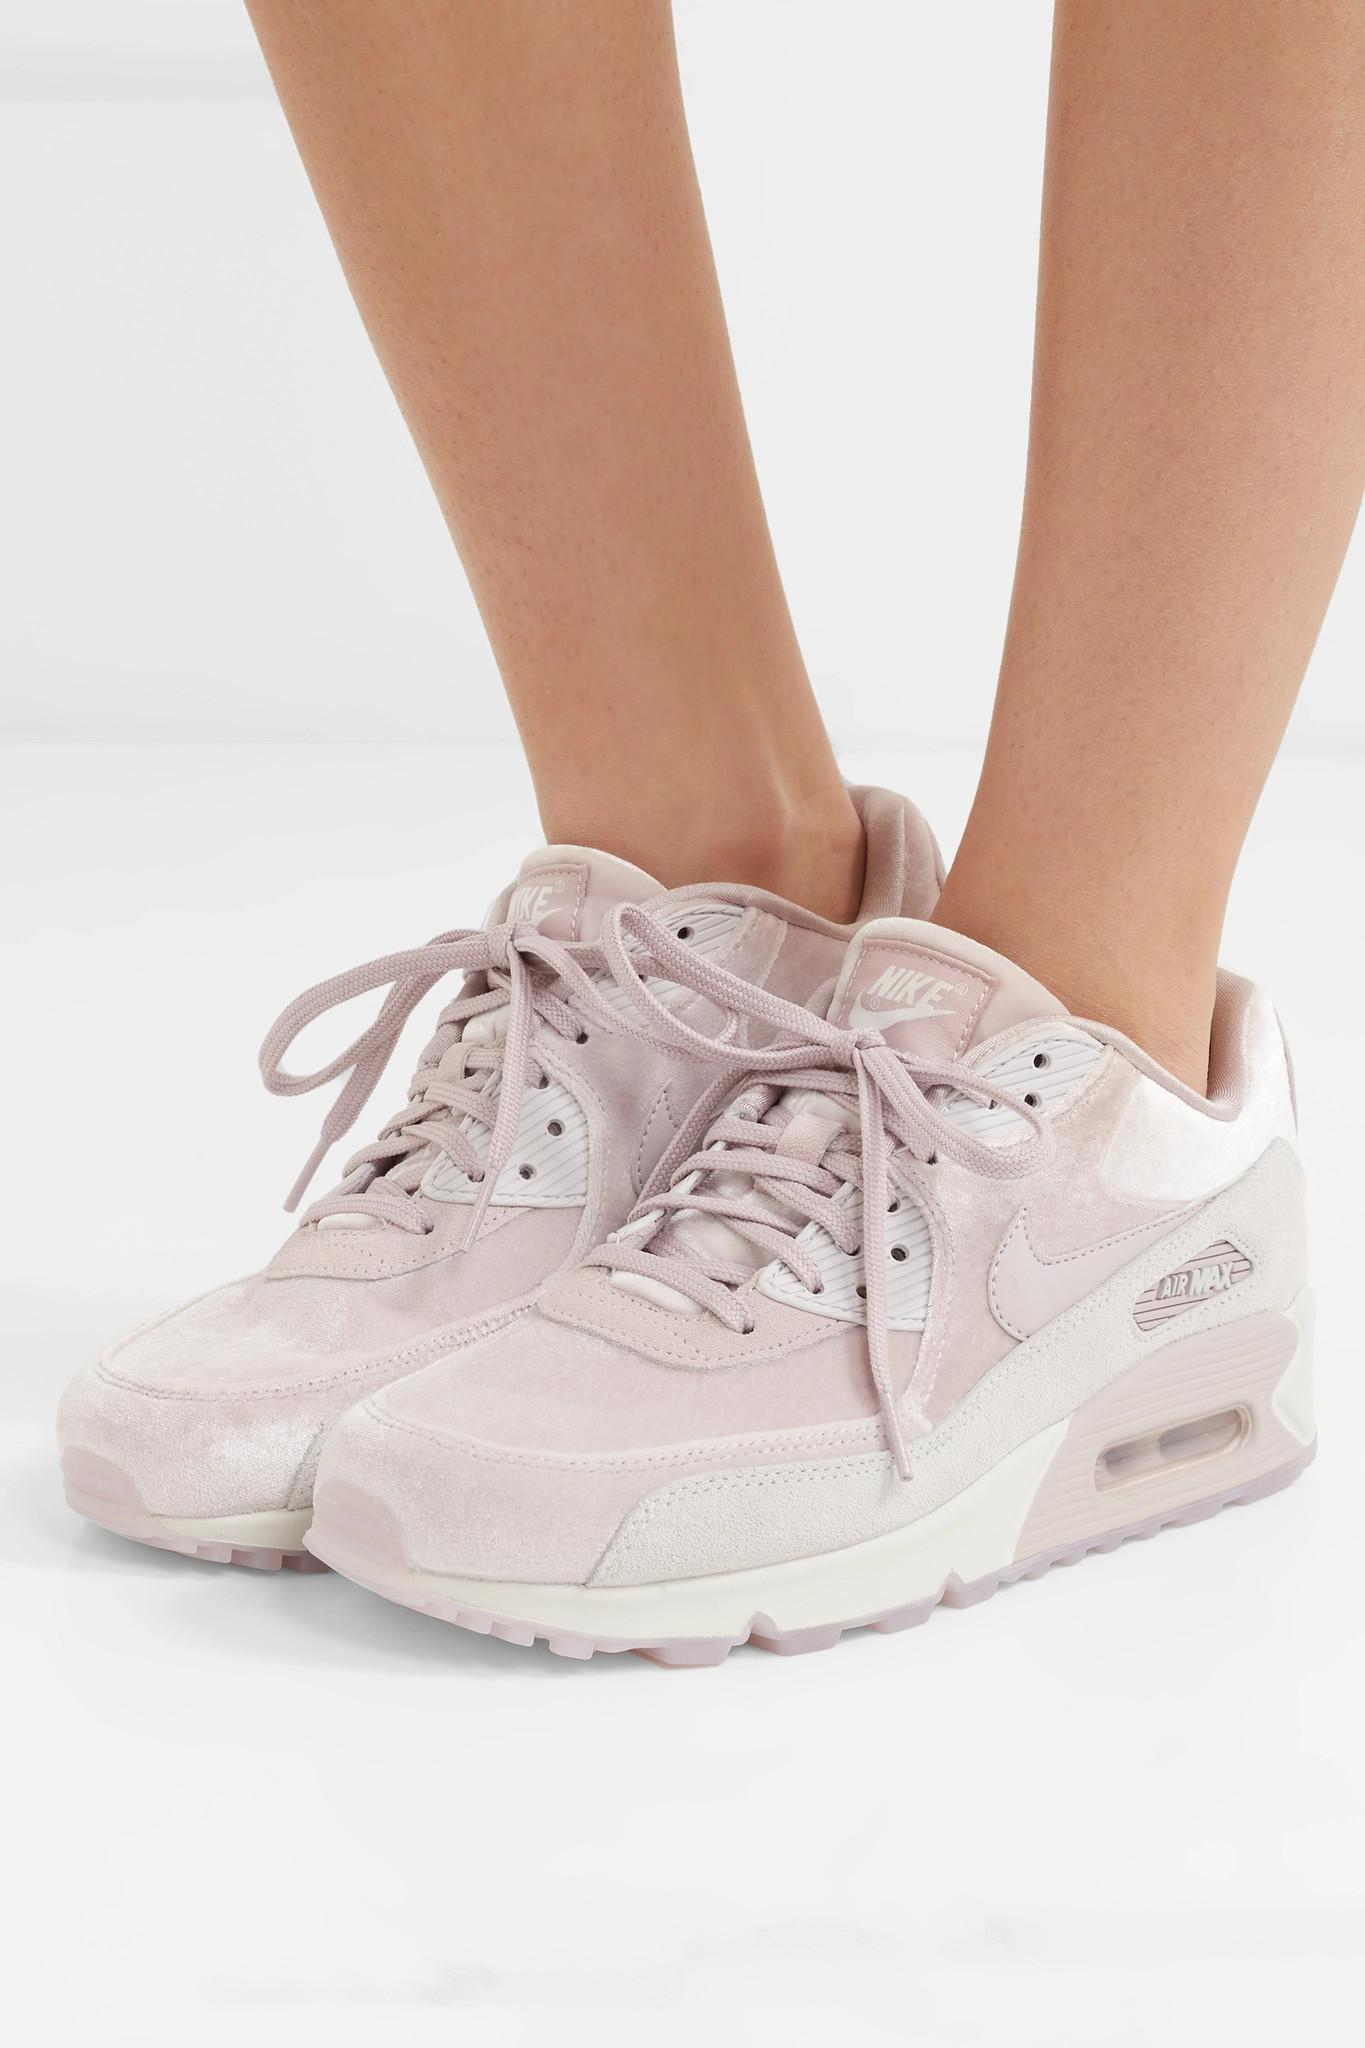 4811b14b6d Nike Air Max 90 Lx Velvet And Suede Sneakers in Pink - Lyst